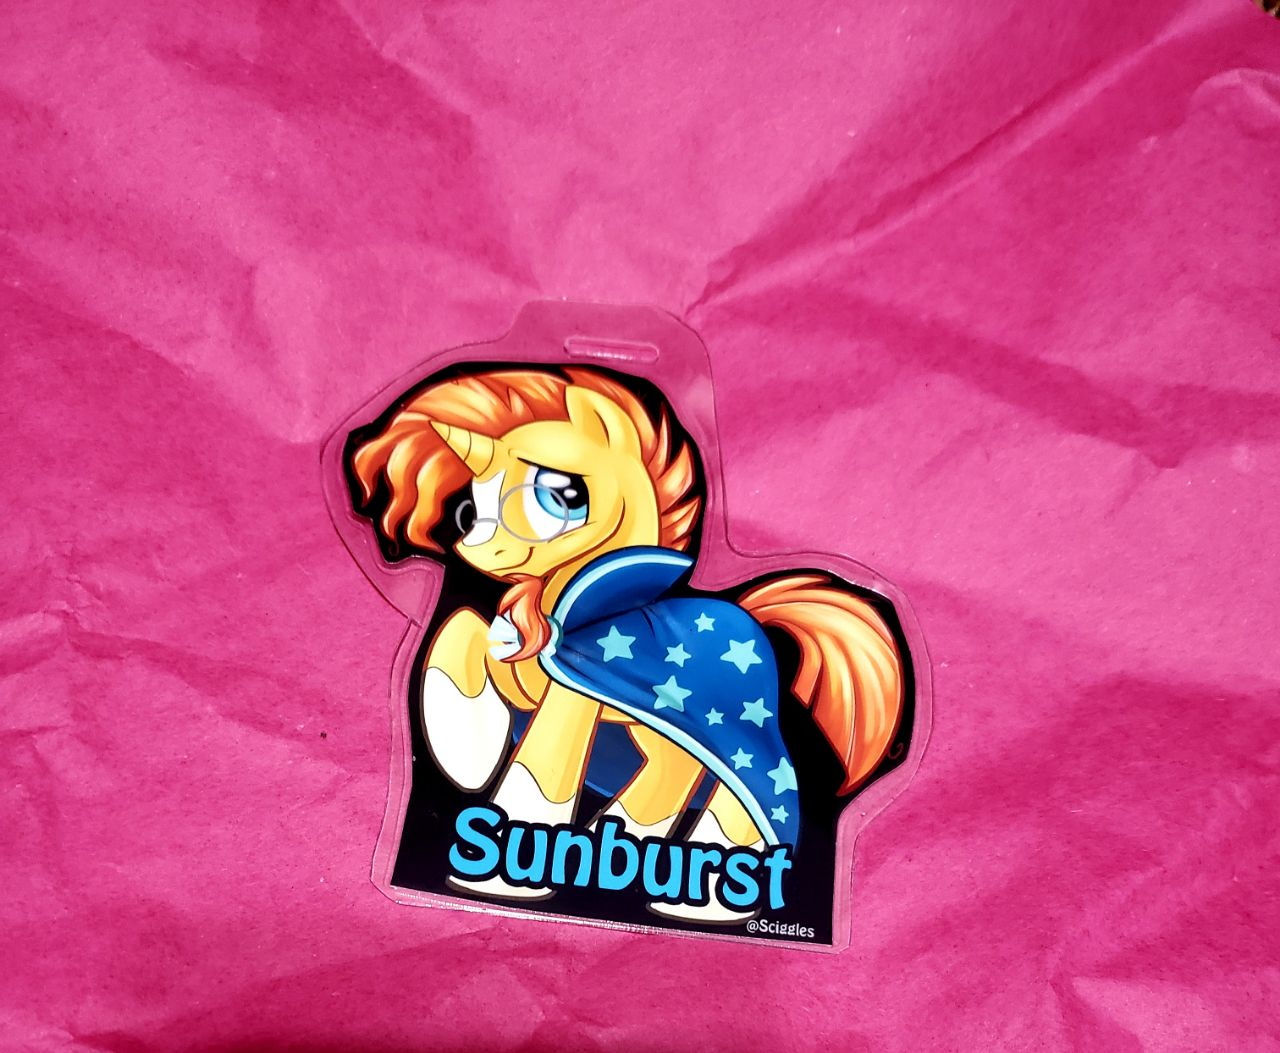 Pony Badges - Supporting Characters, Badges, Badges, Customizeable, Pony, Wearable - Sciggles